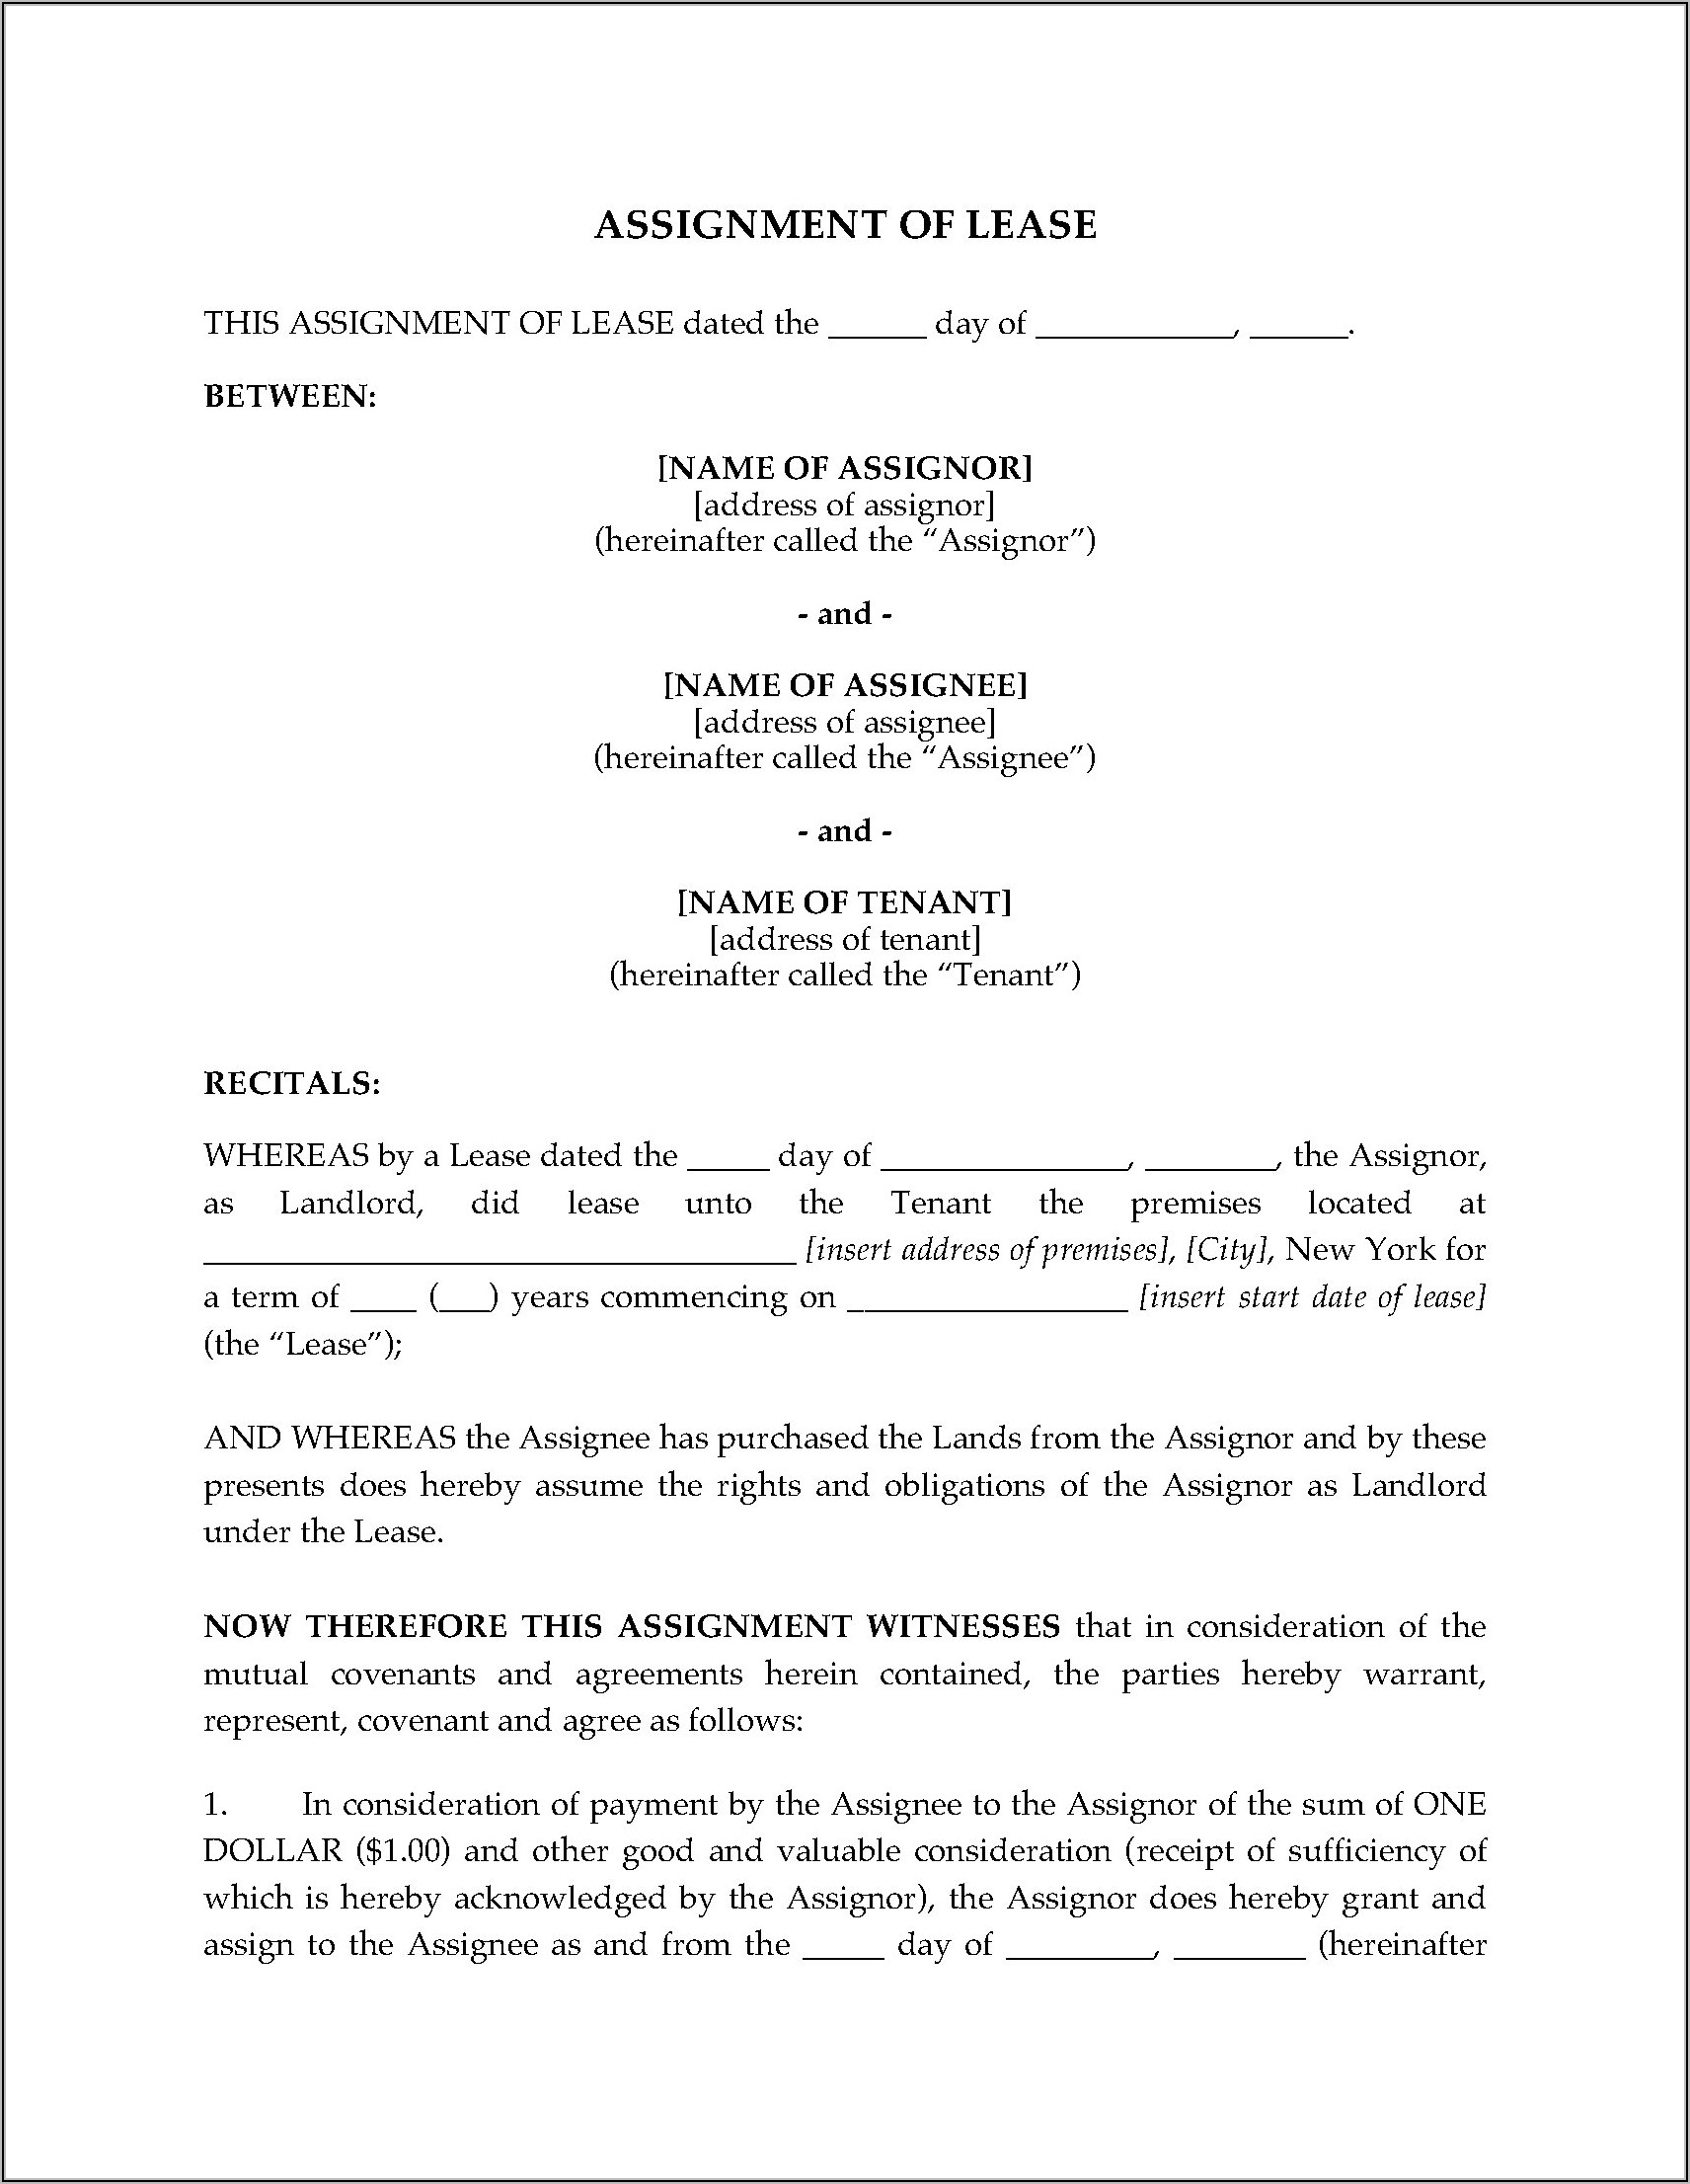 Assignment Of Lease Form New York